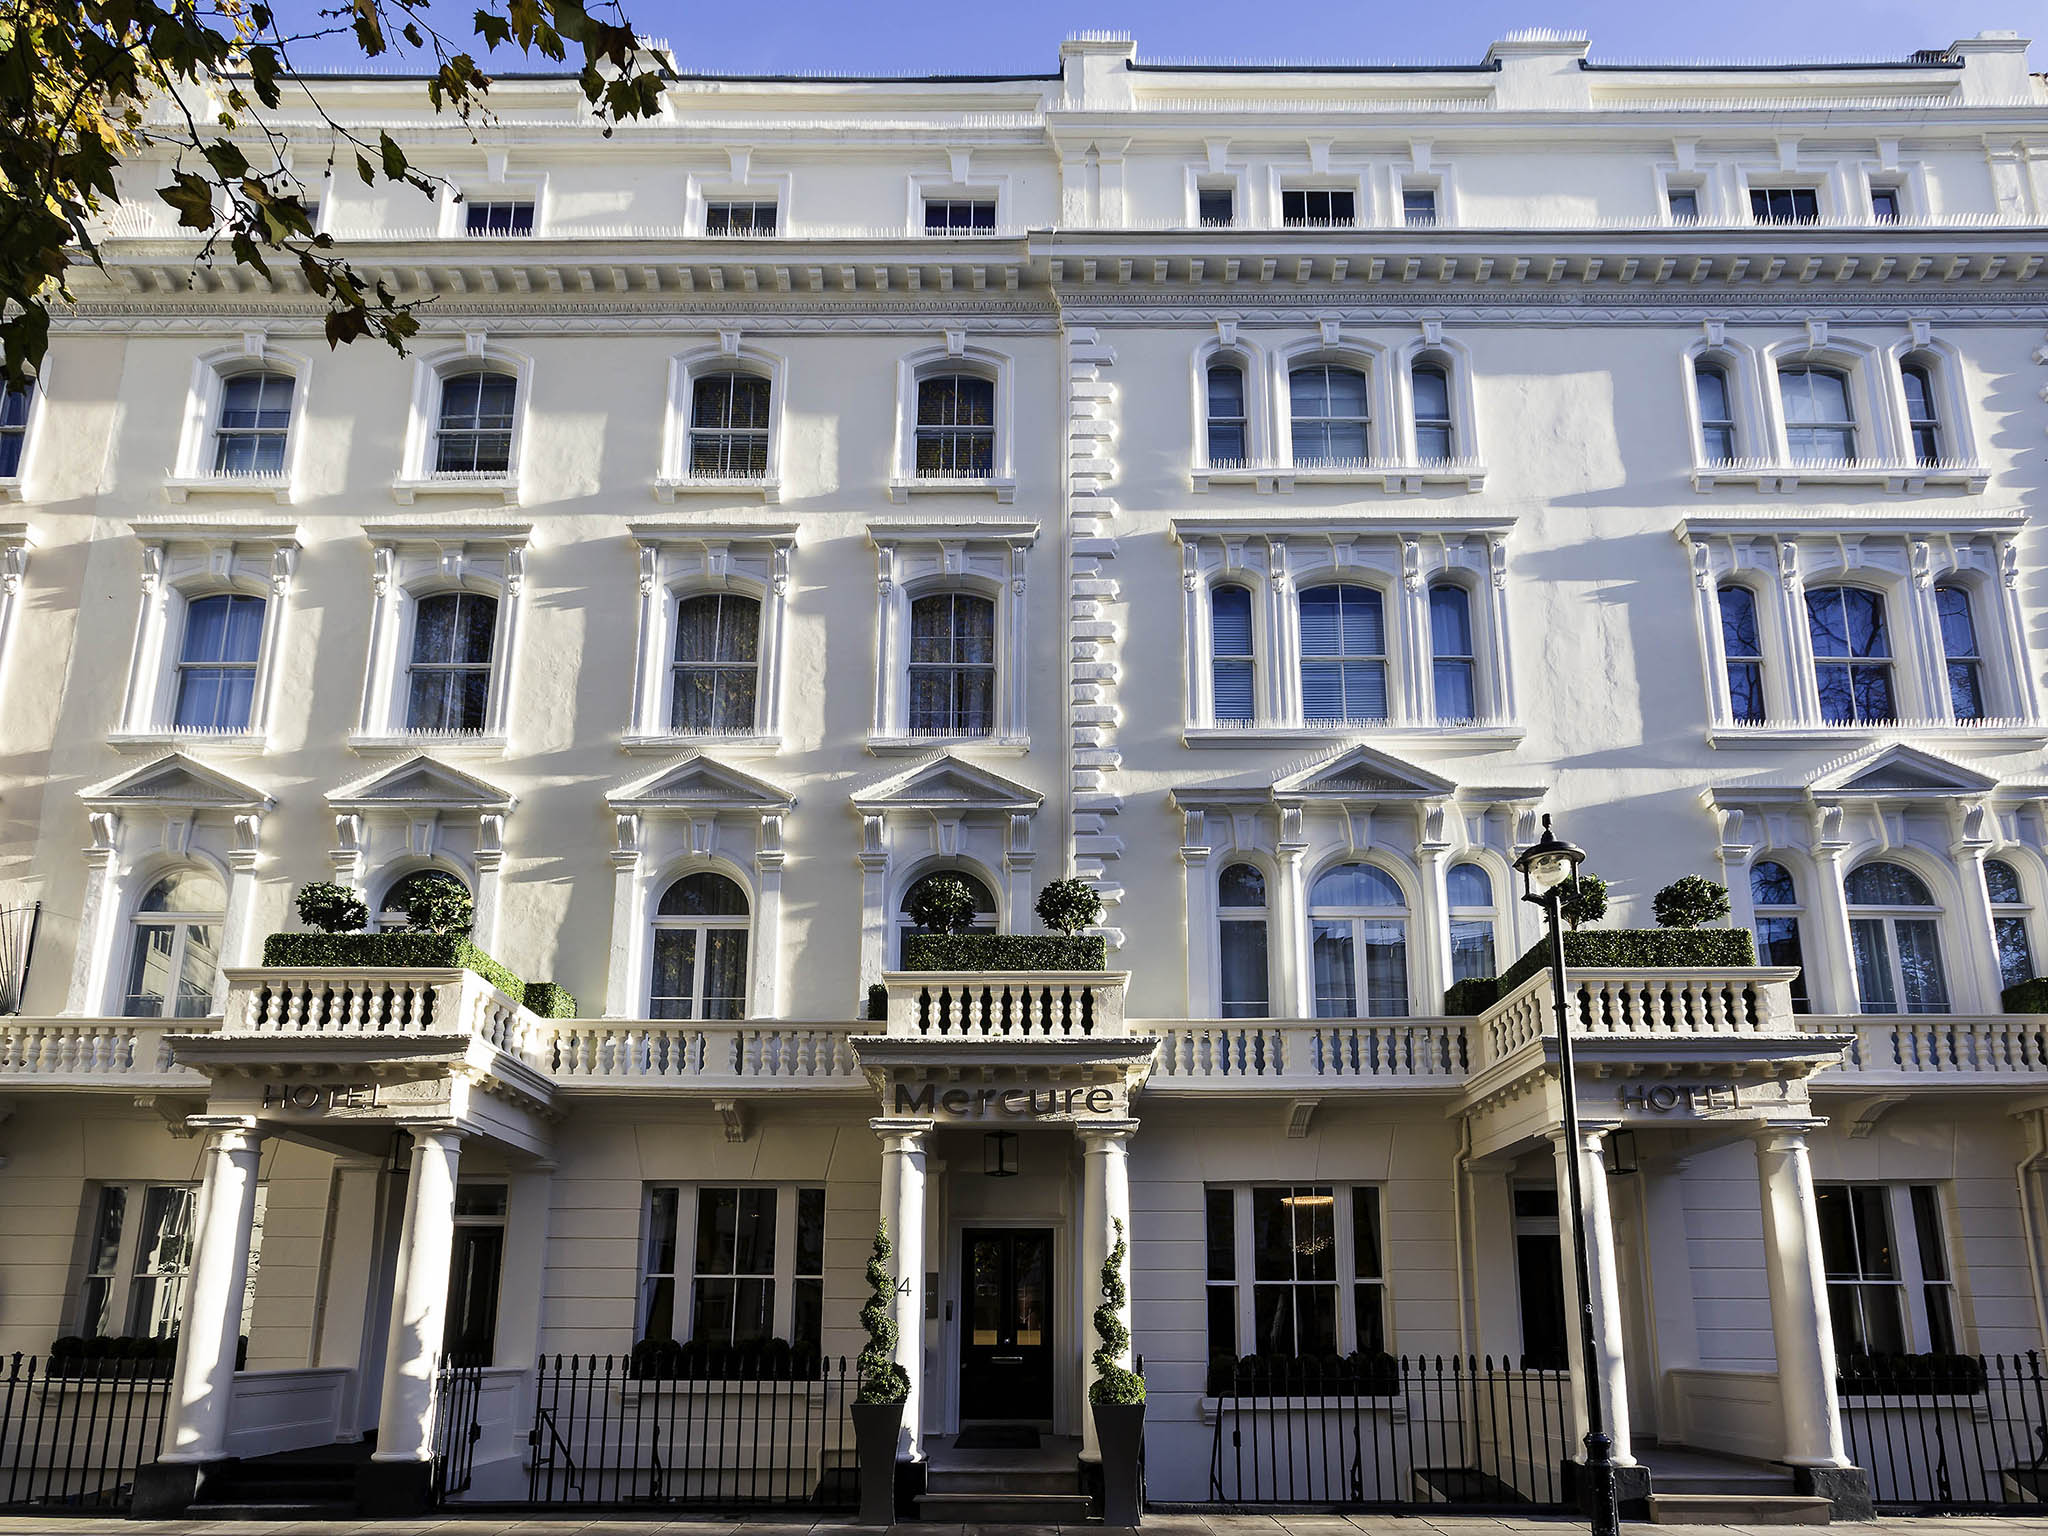 If your name is Archie and your birthday is 6 May, you can get a free stay in a London hotel